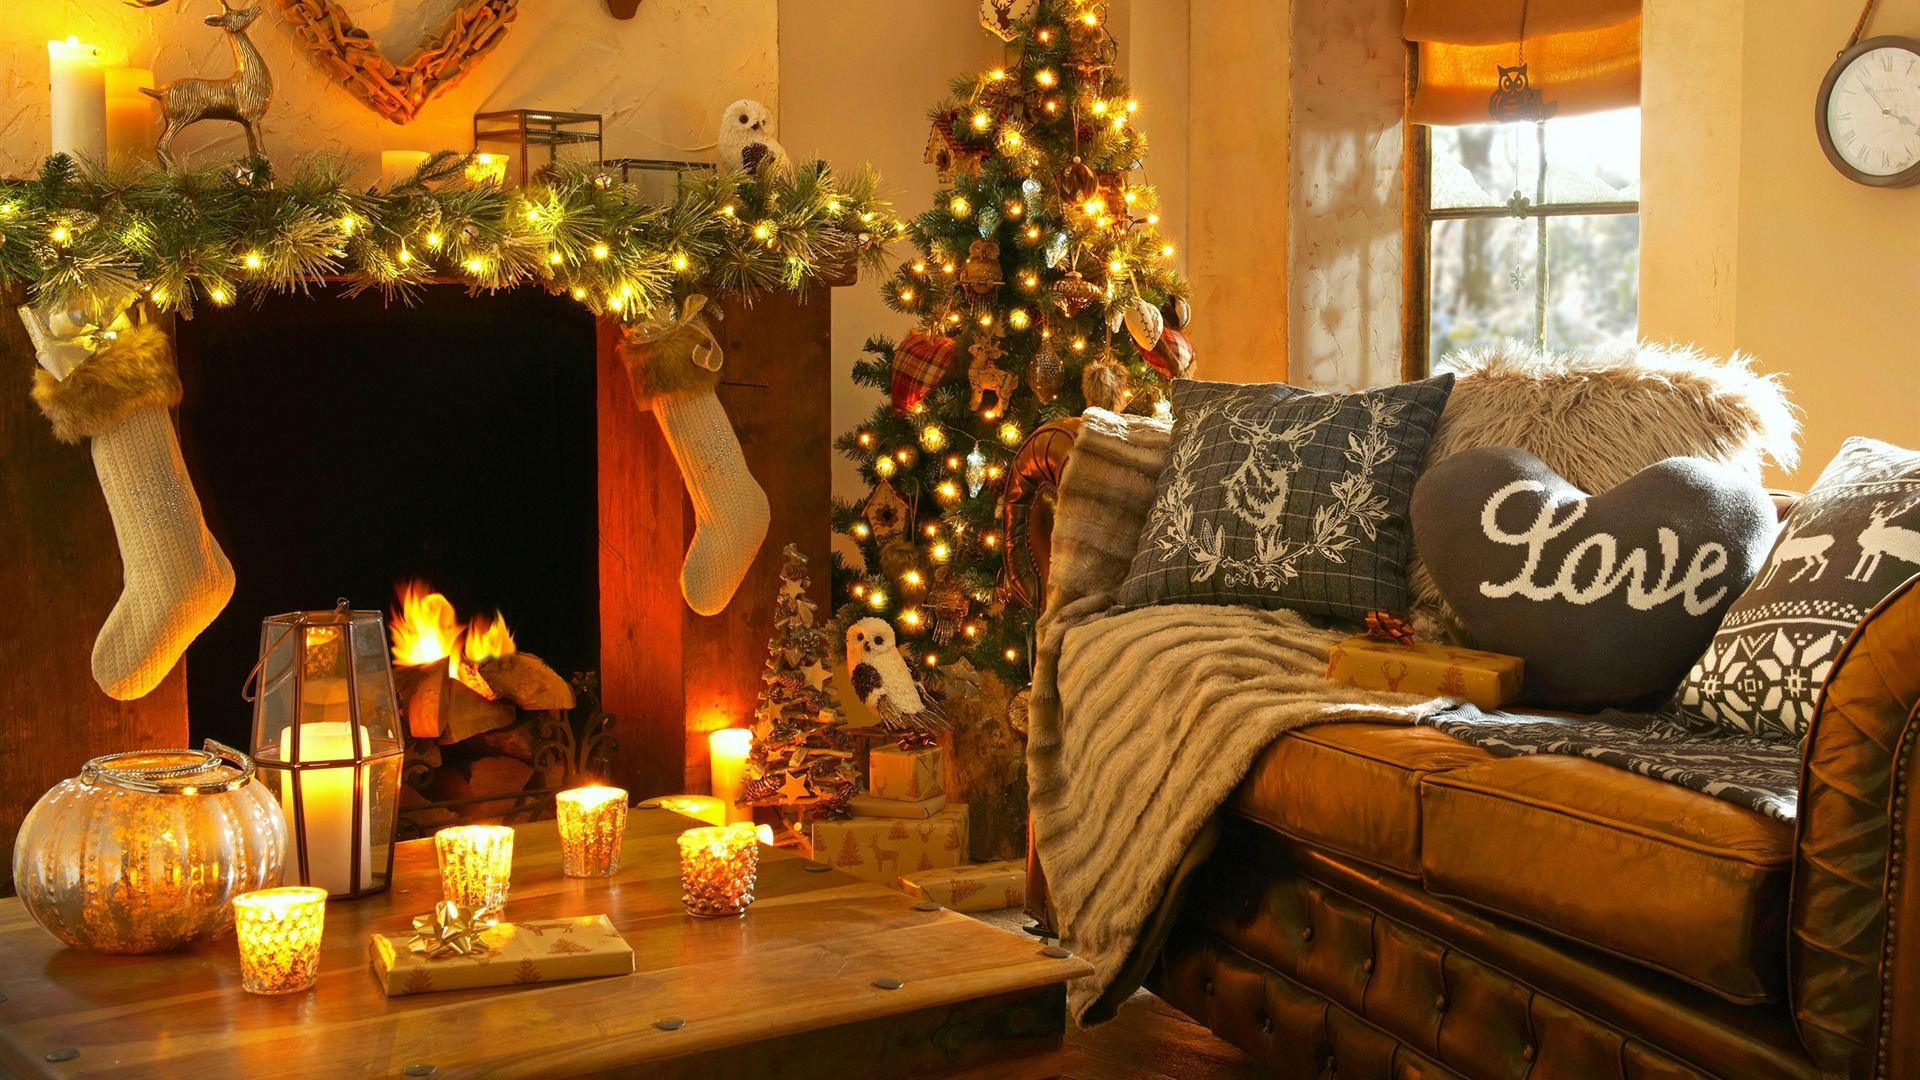 Christmas Interiors Decoration Hd Wallpaper